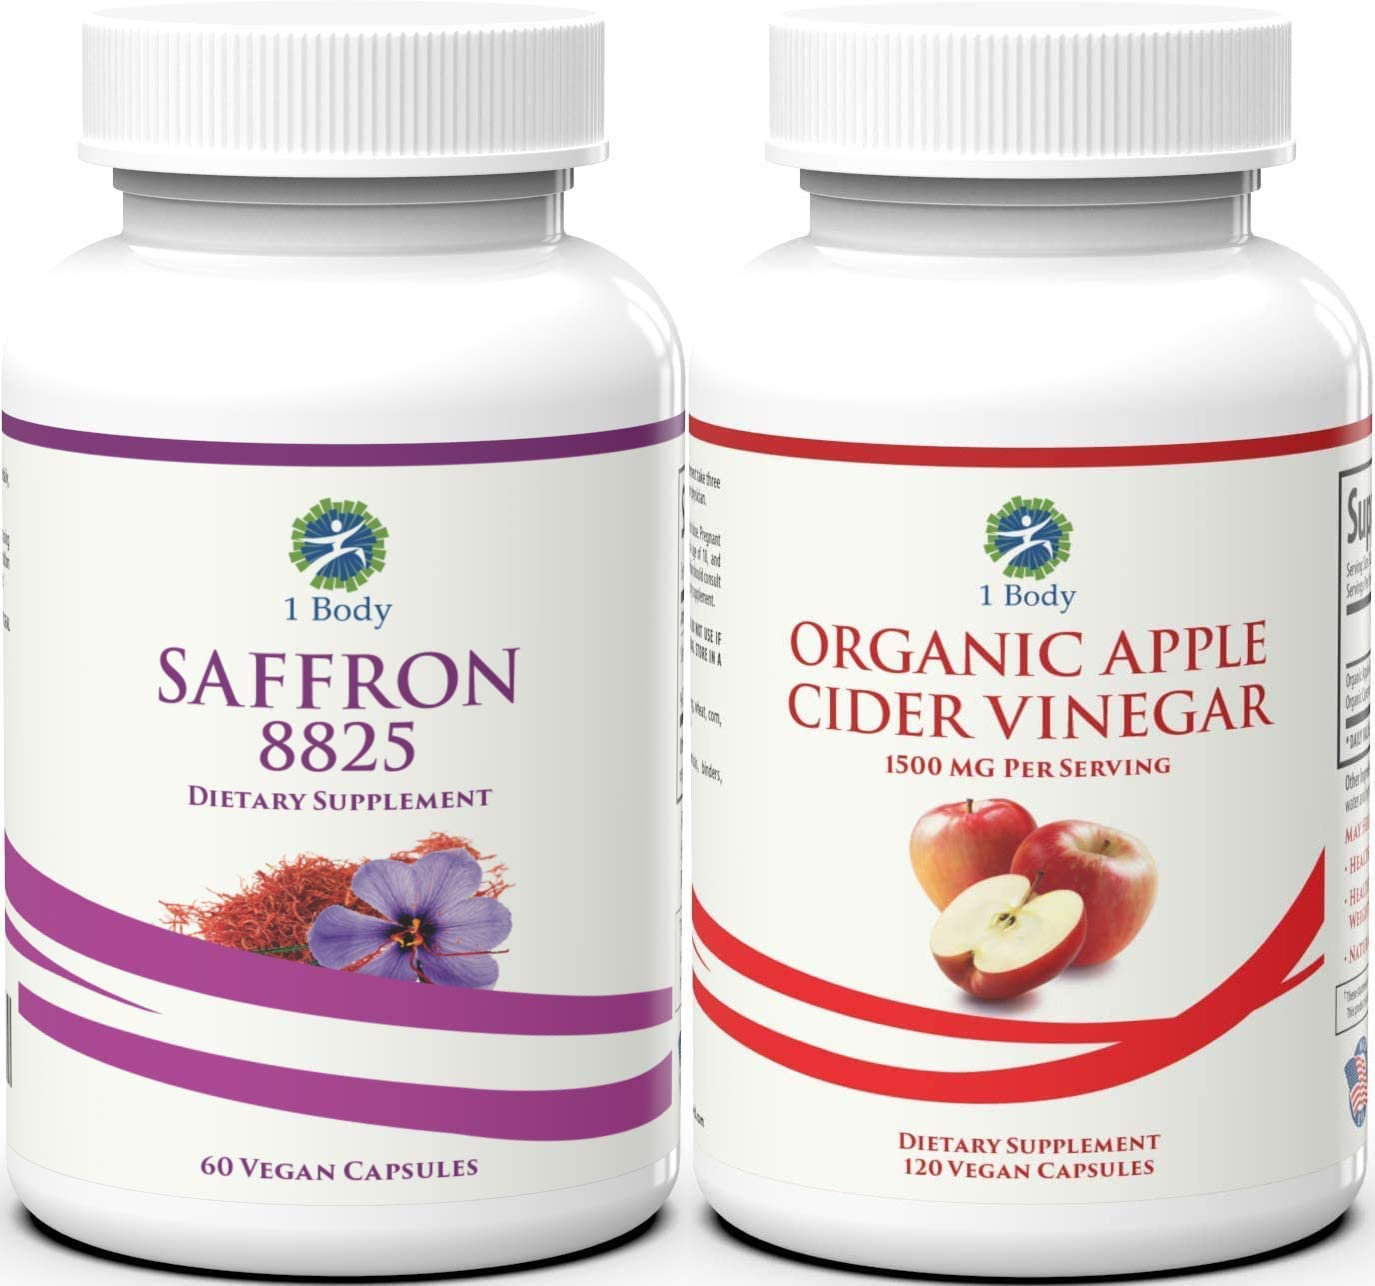 1 Body Saffron 8825 and Organic Apple Cider Vinegar Appetite Suppressant Weight Loss Bundle for Men and Women